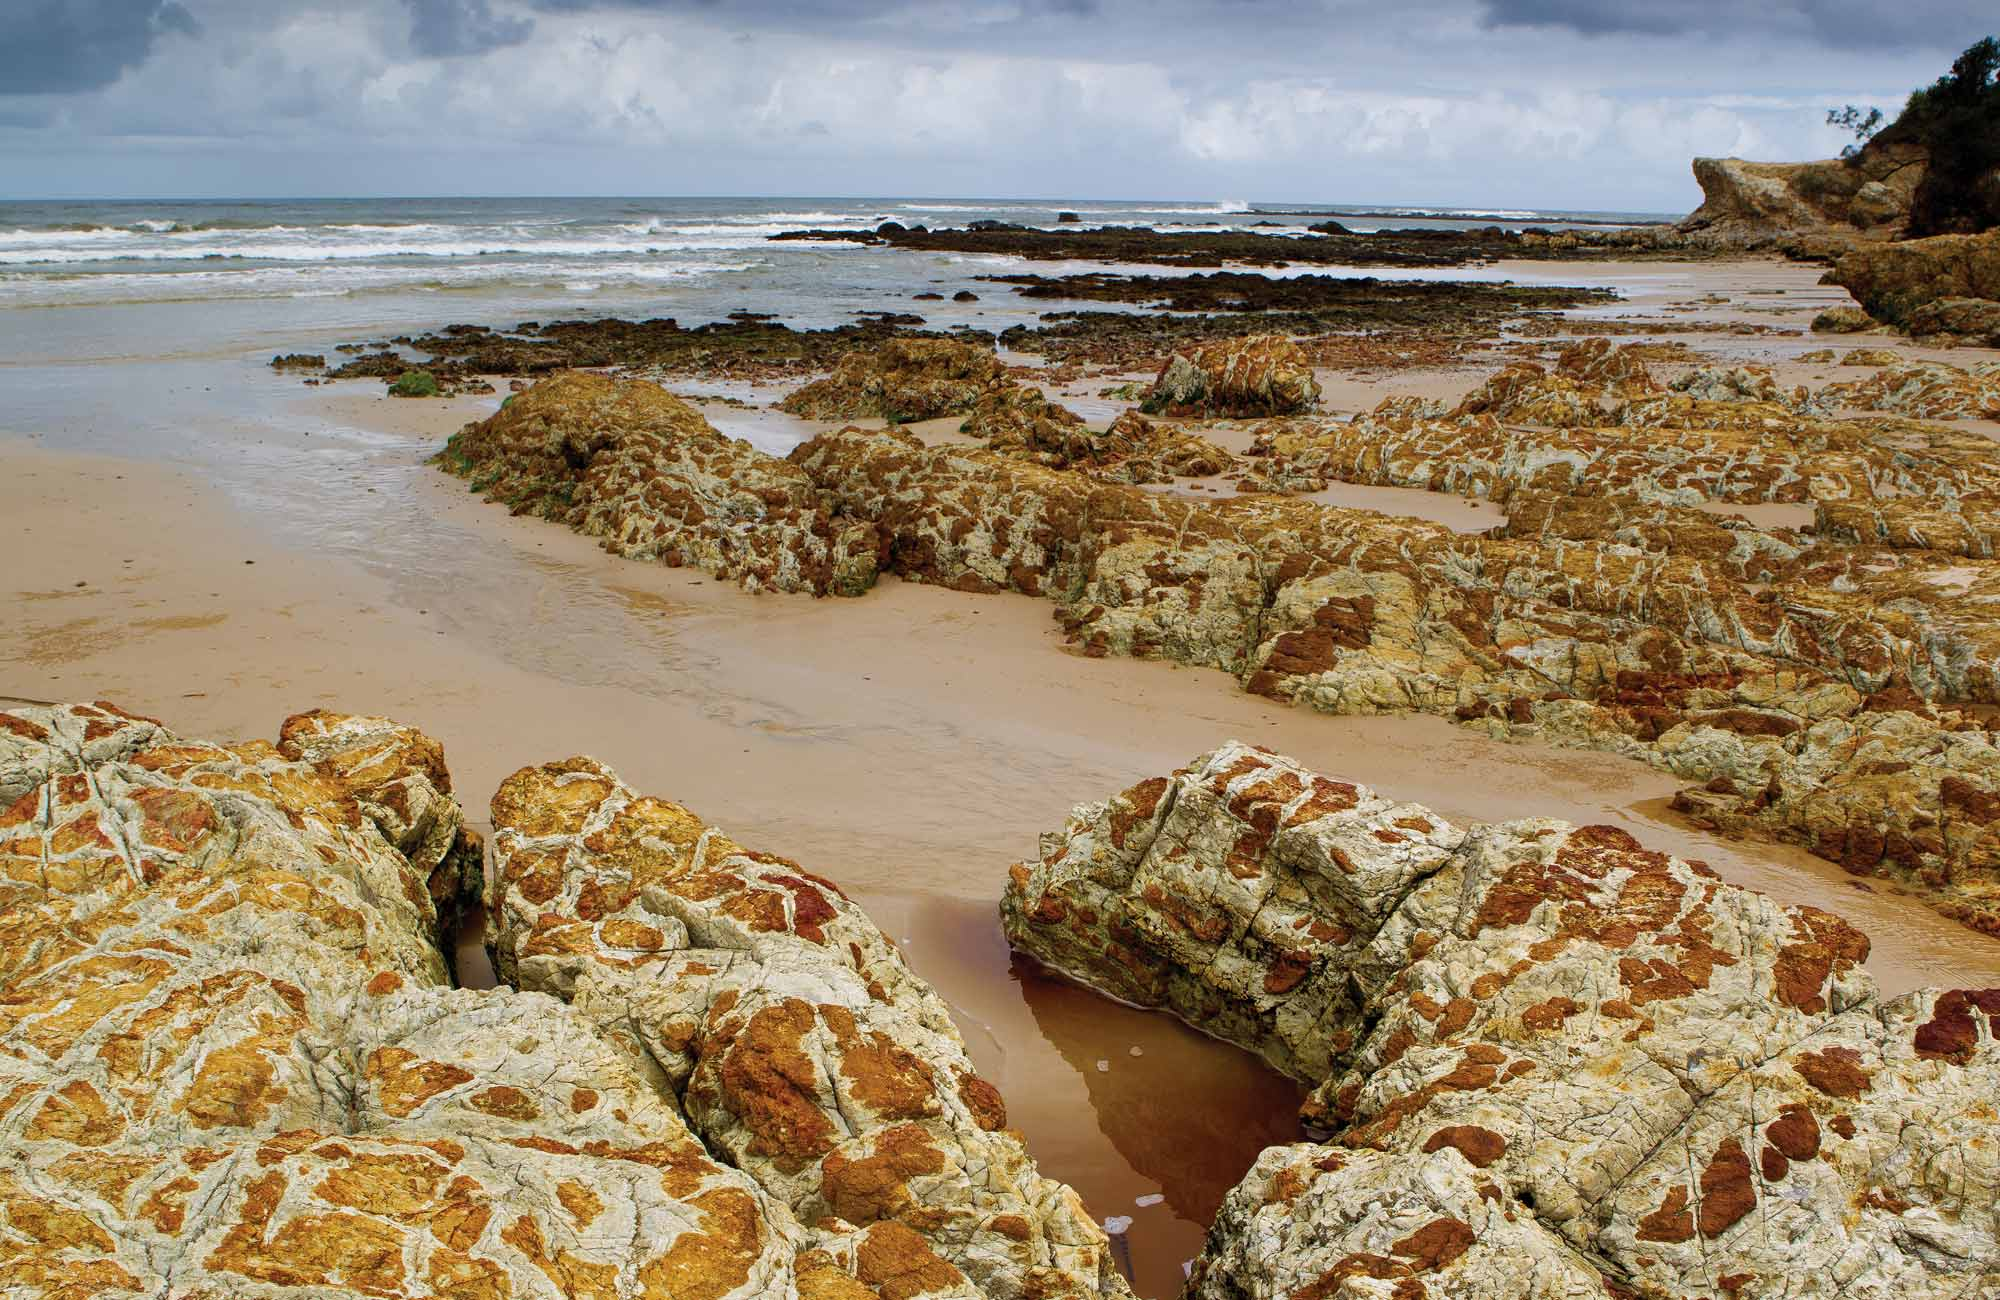 Golden sand and rocks in Yuraygir National Park. Photo: Rob Cleary